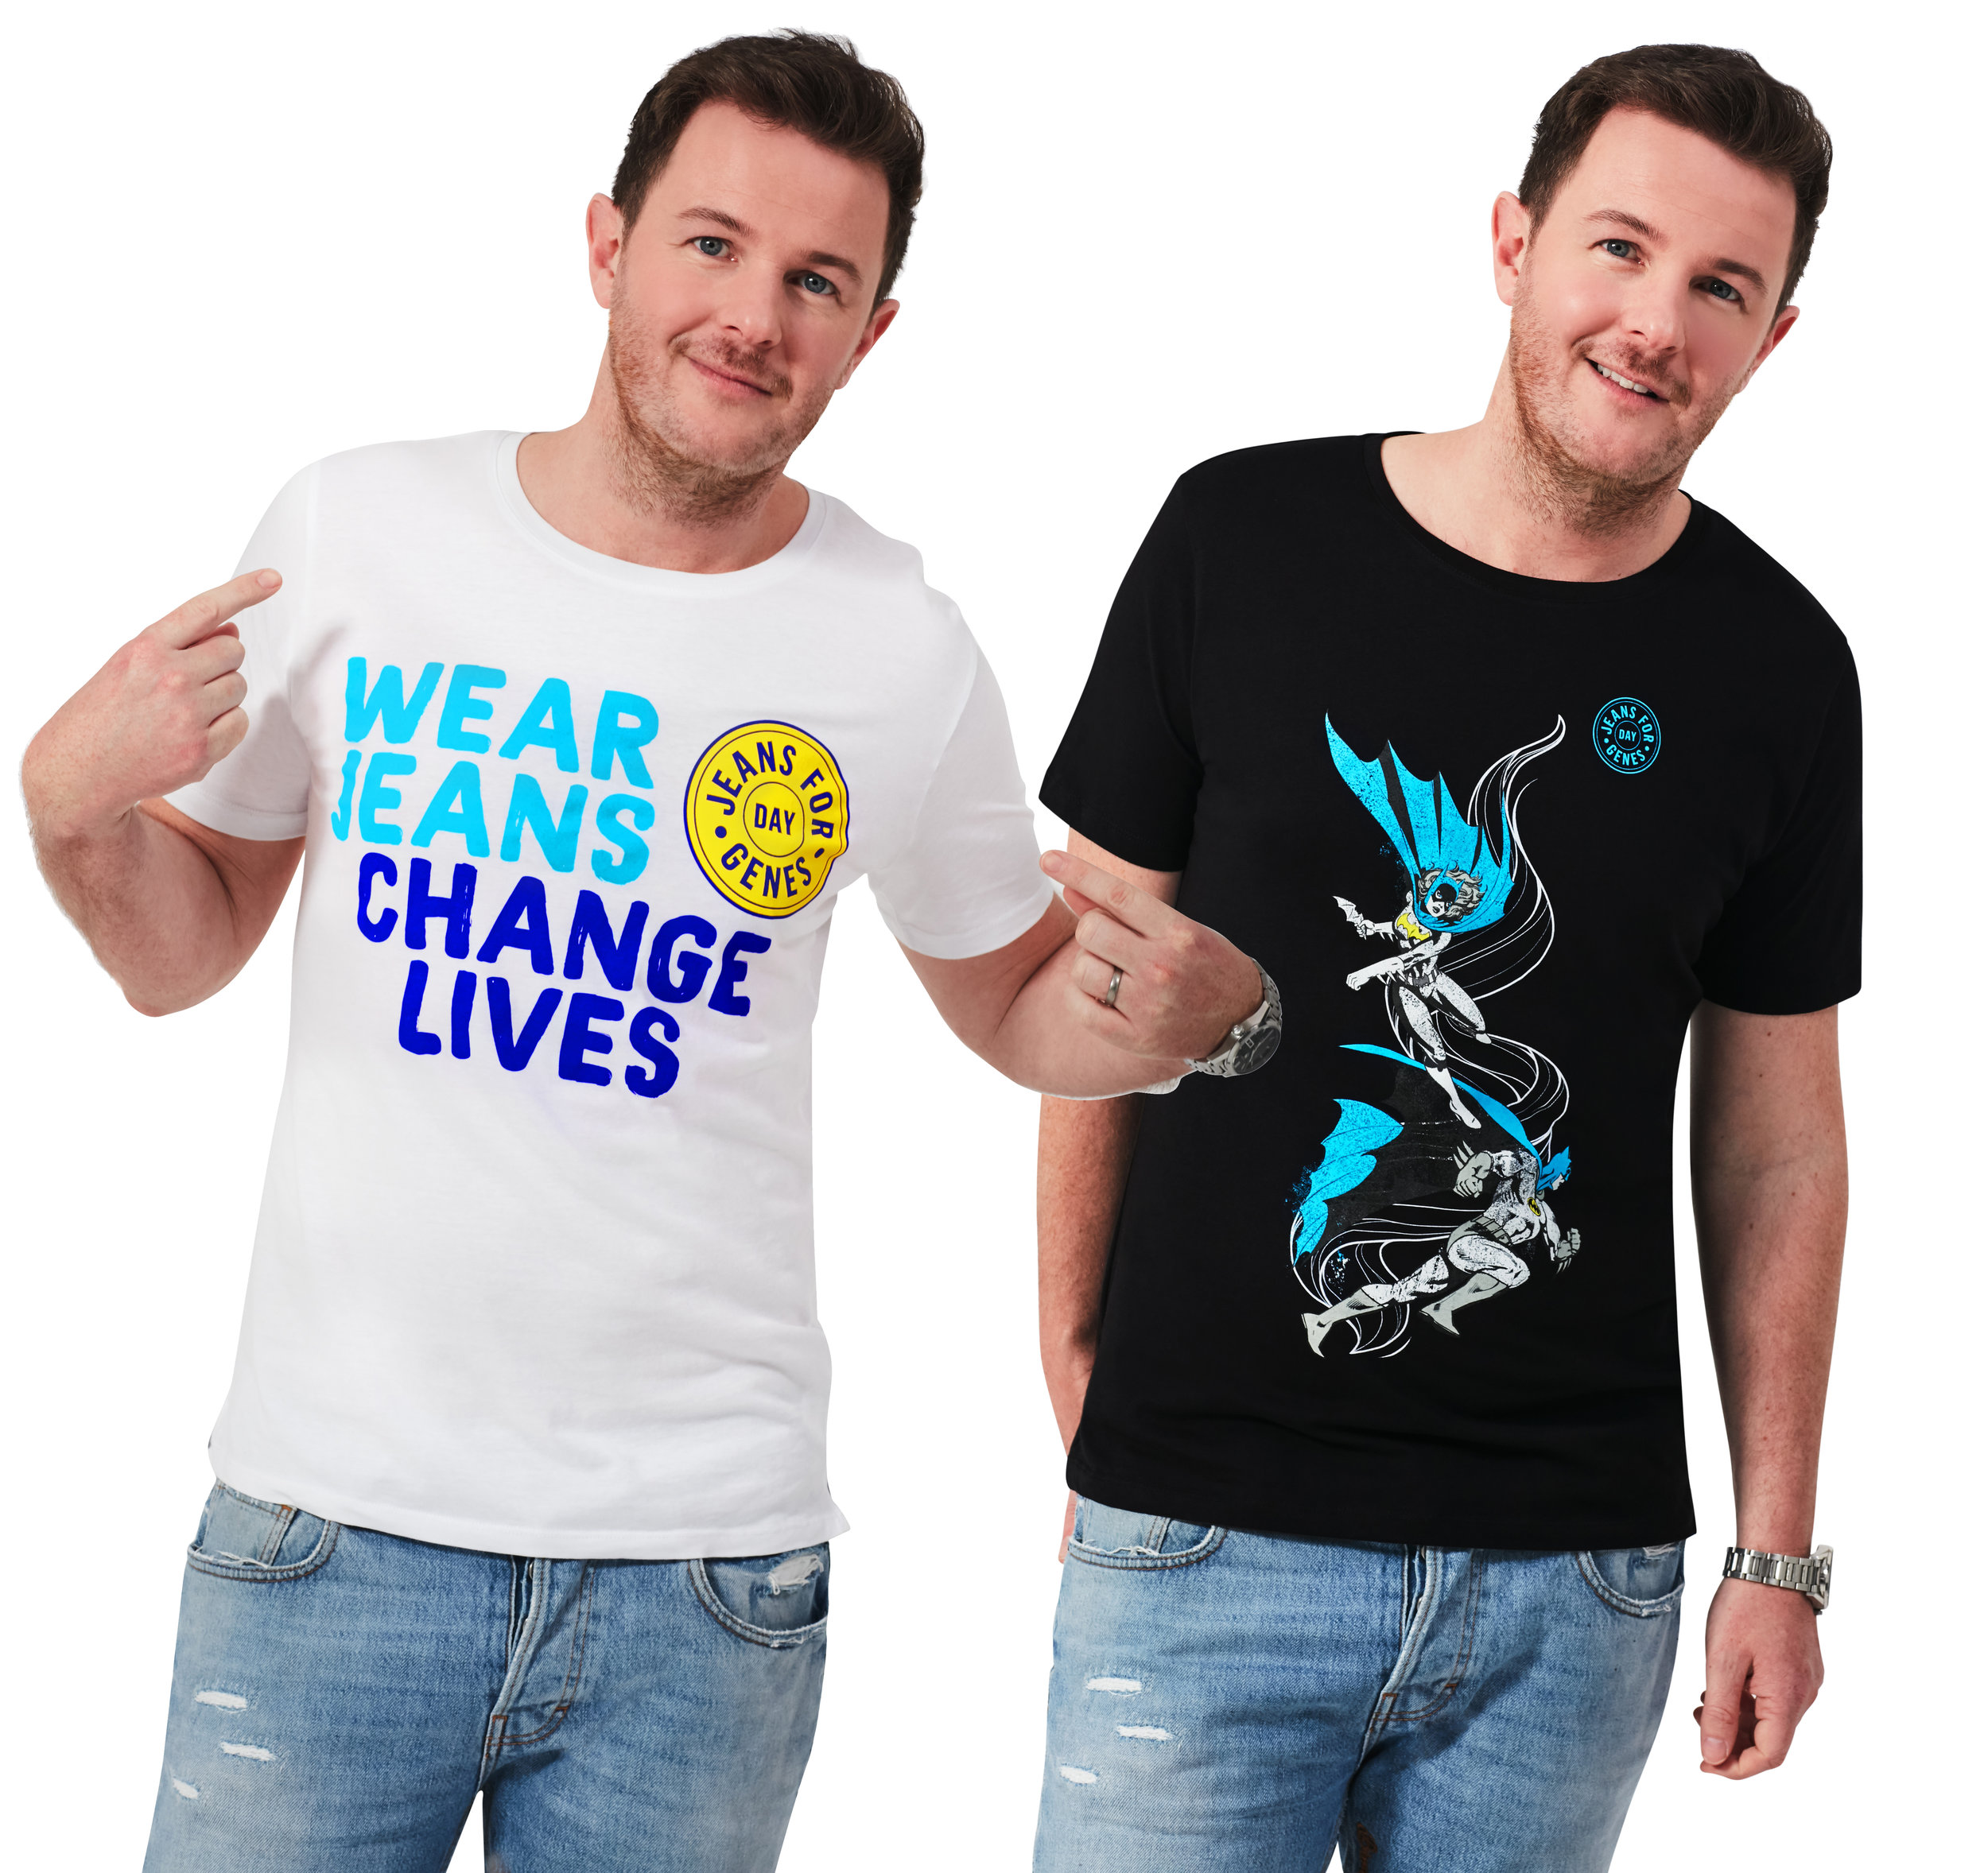 Jeans for Genes tees